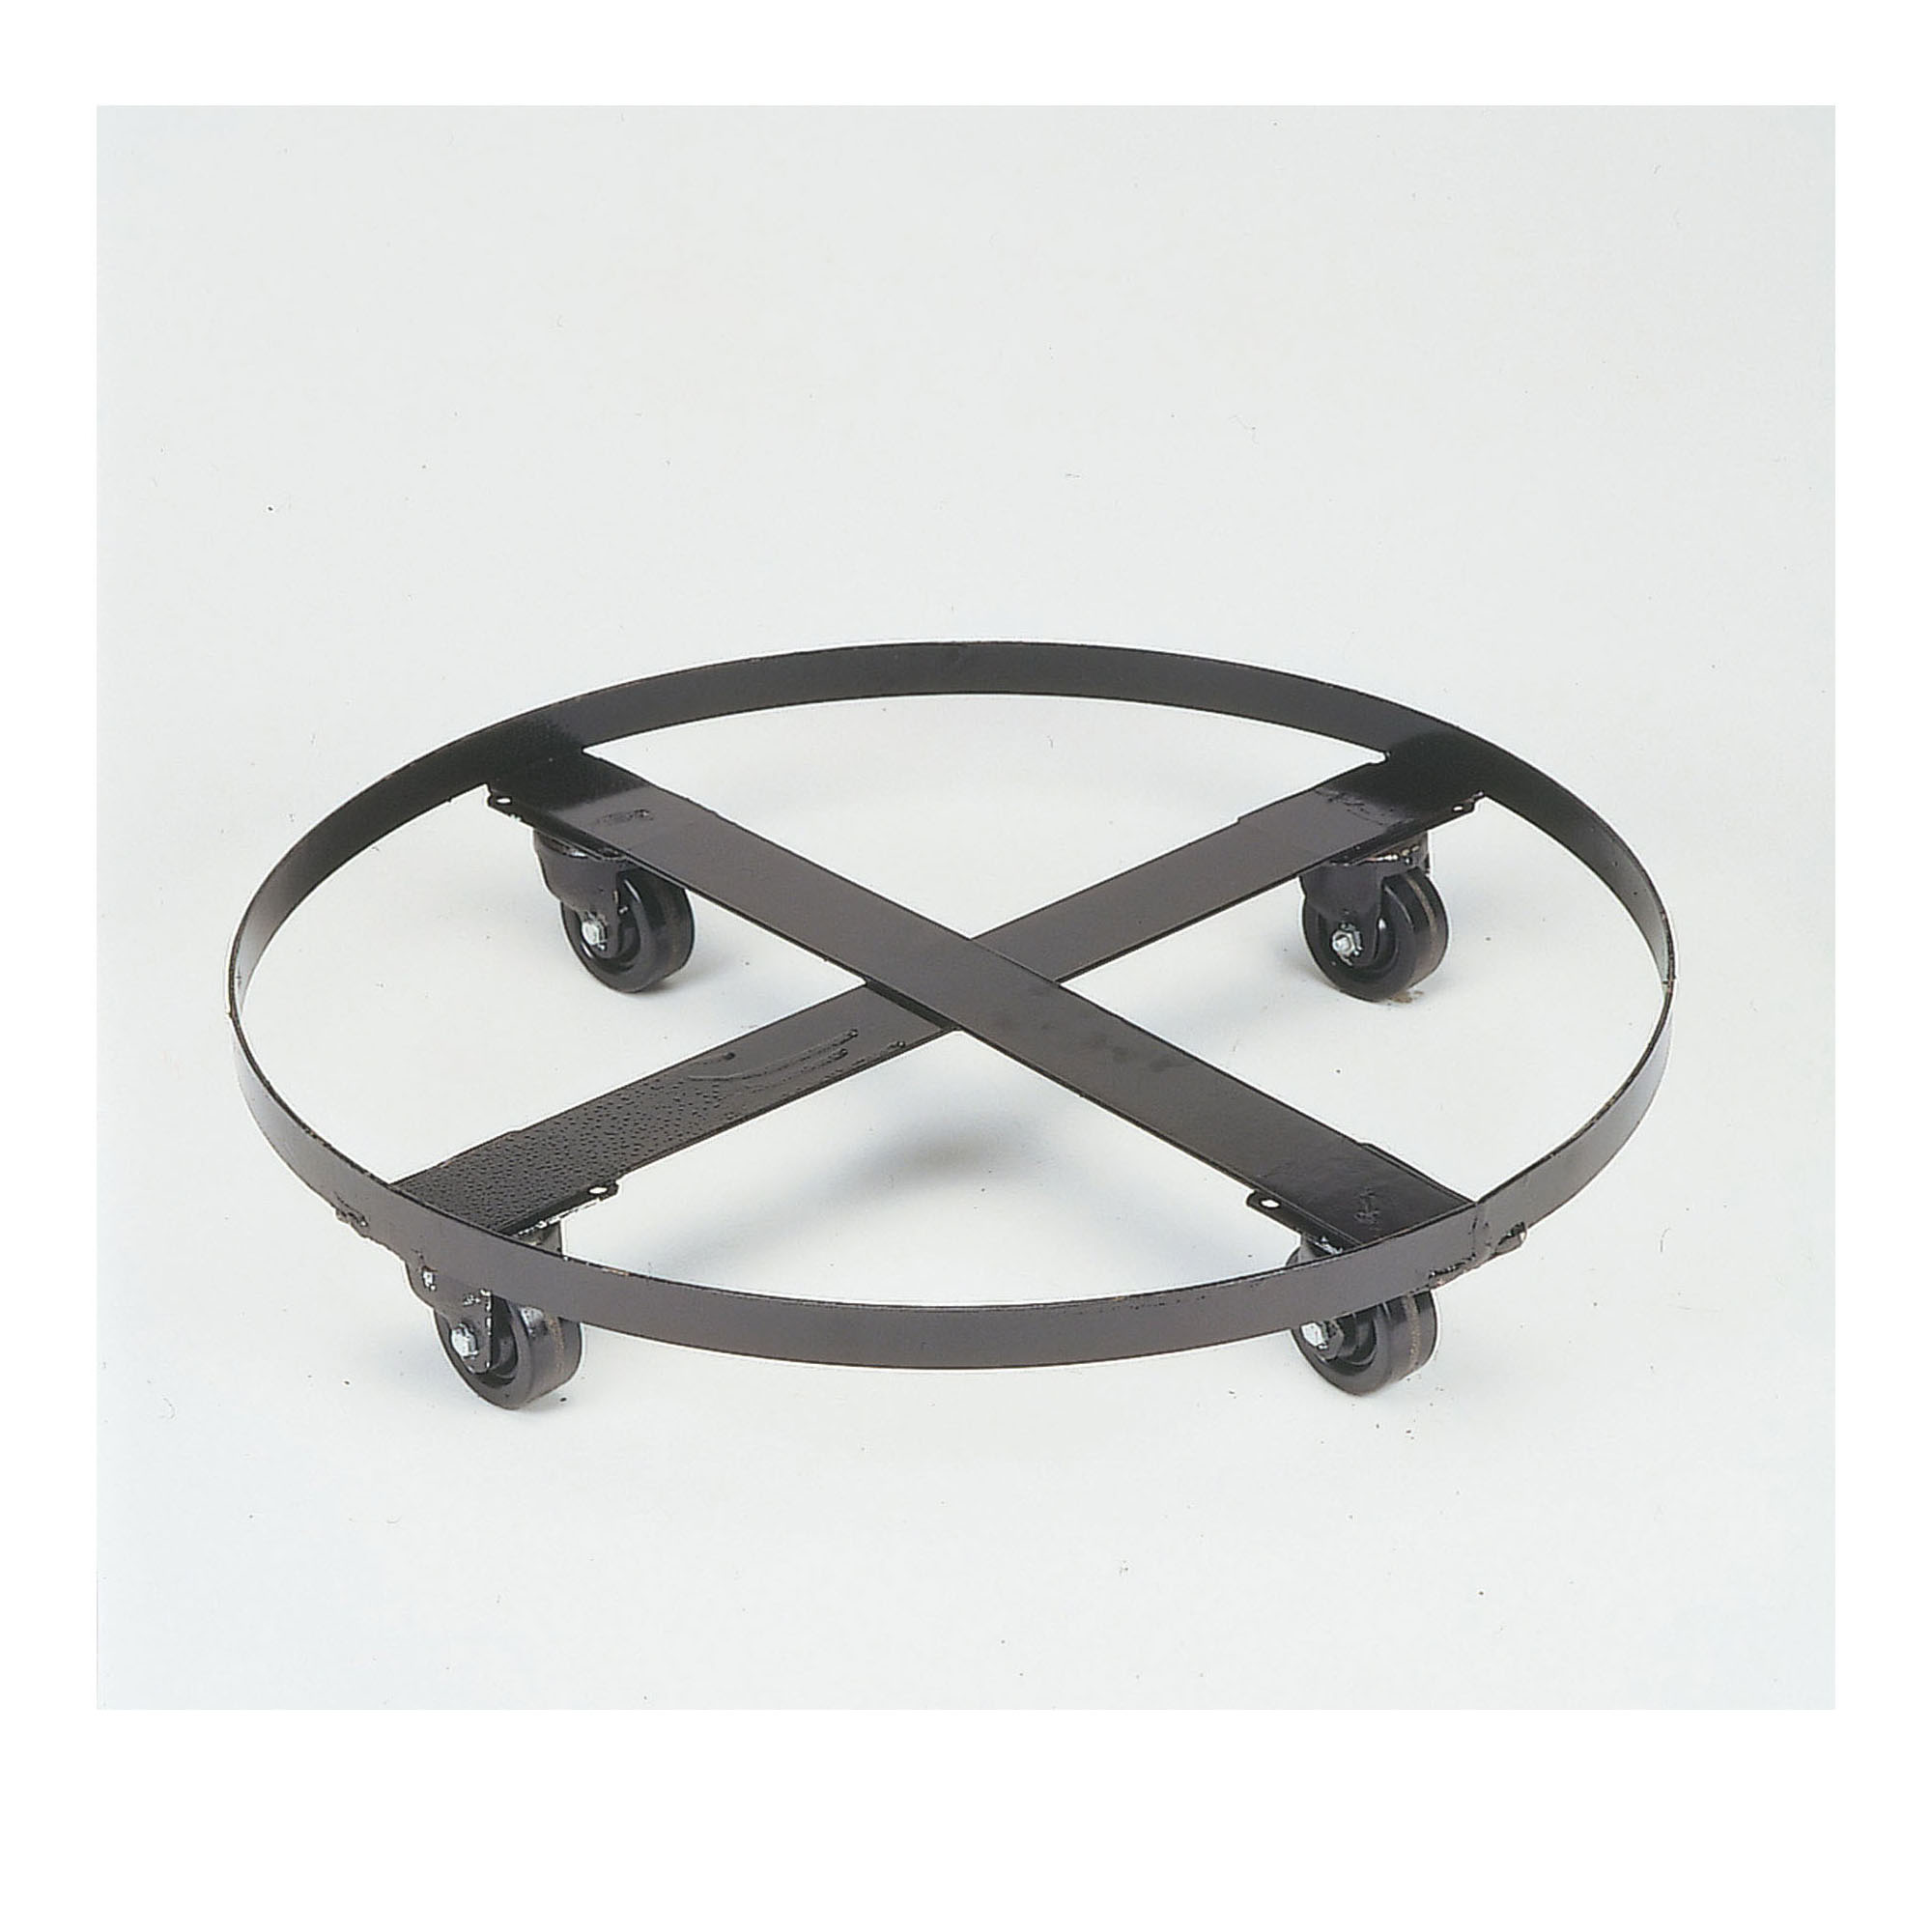 Justrite® 28270 Drum Dolly, 55 gal Drum, 27 in OD, 5-1/4 in H